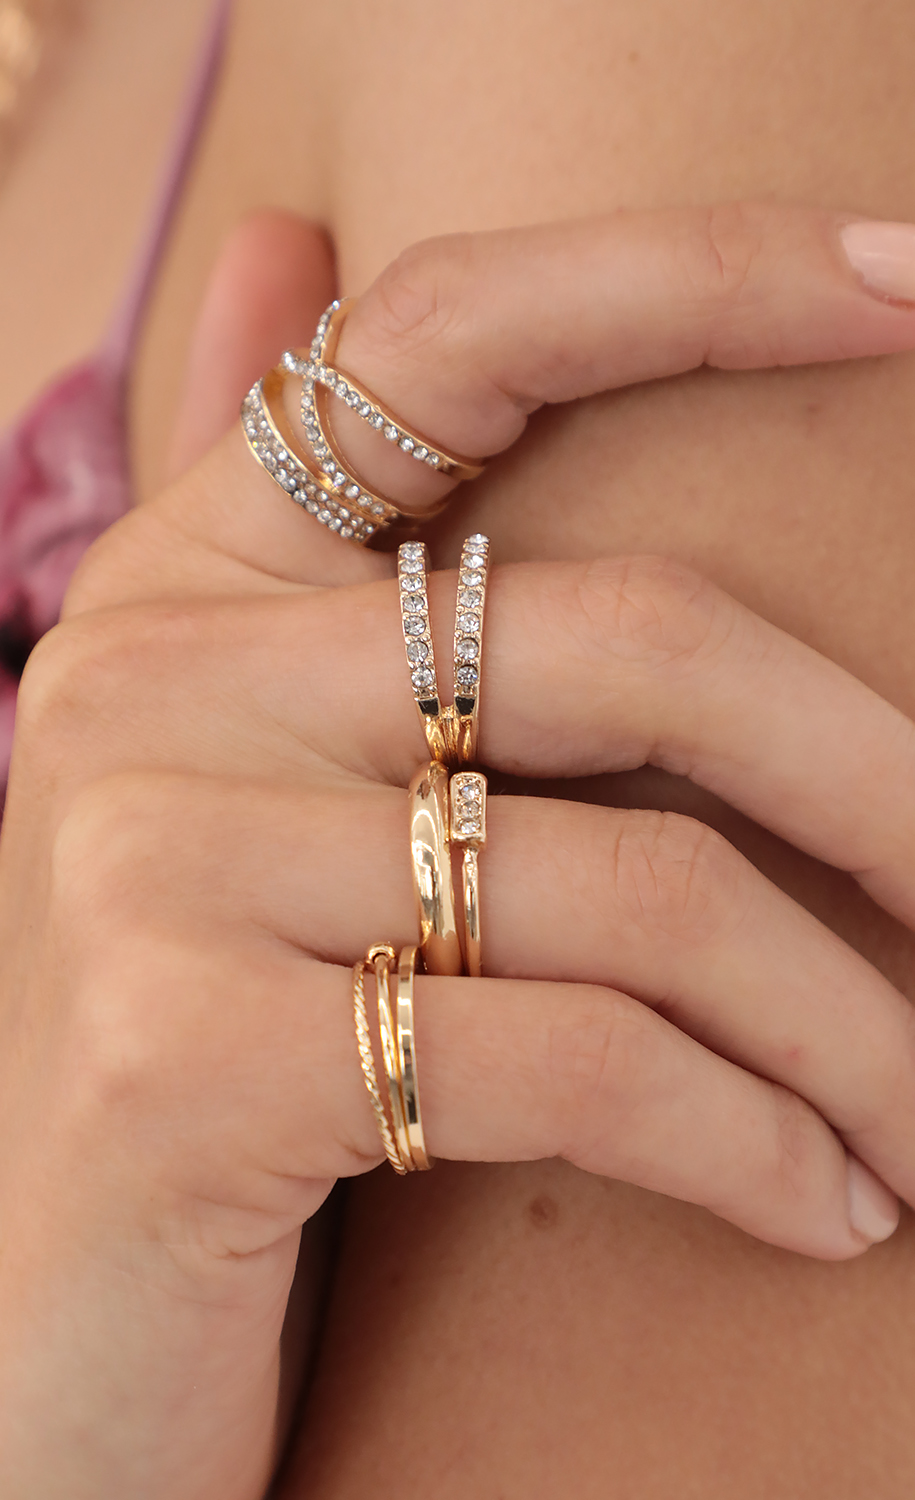 I Want It - 5 Piece Ring Set in Gold